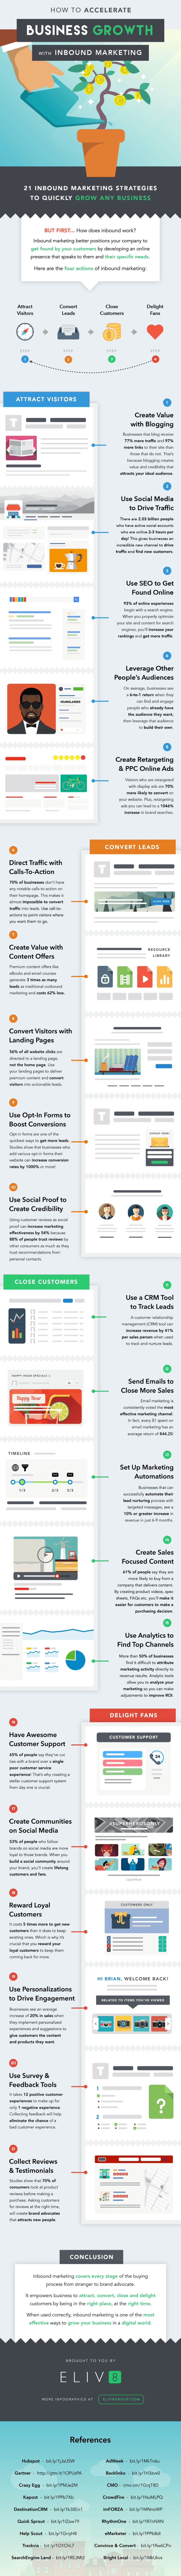 Inbound Marketing Strategies Infographic